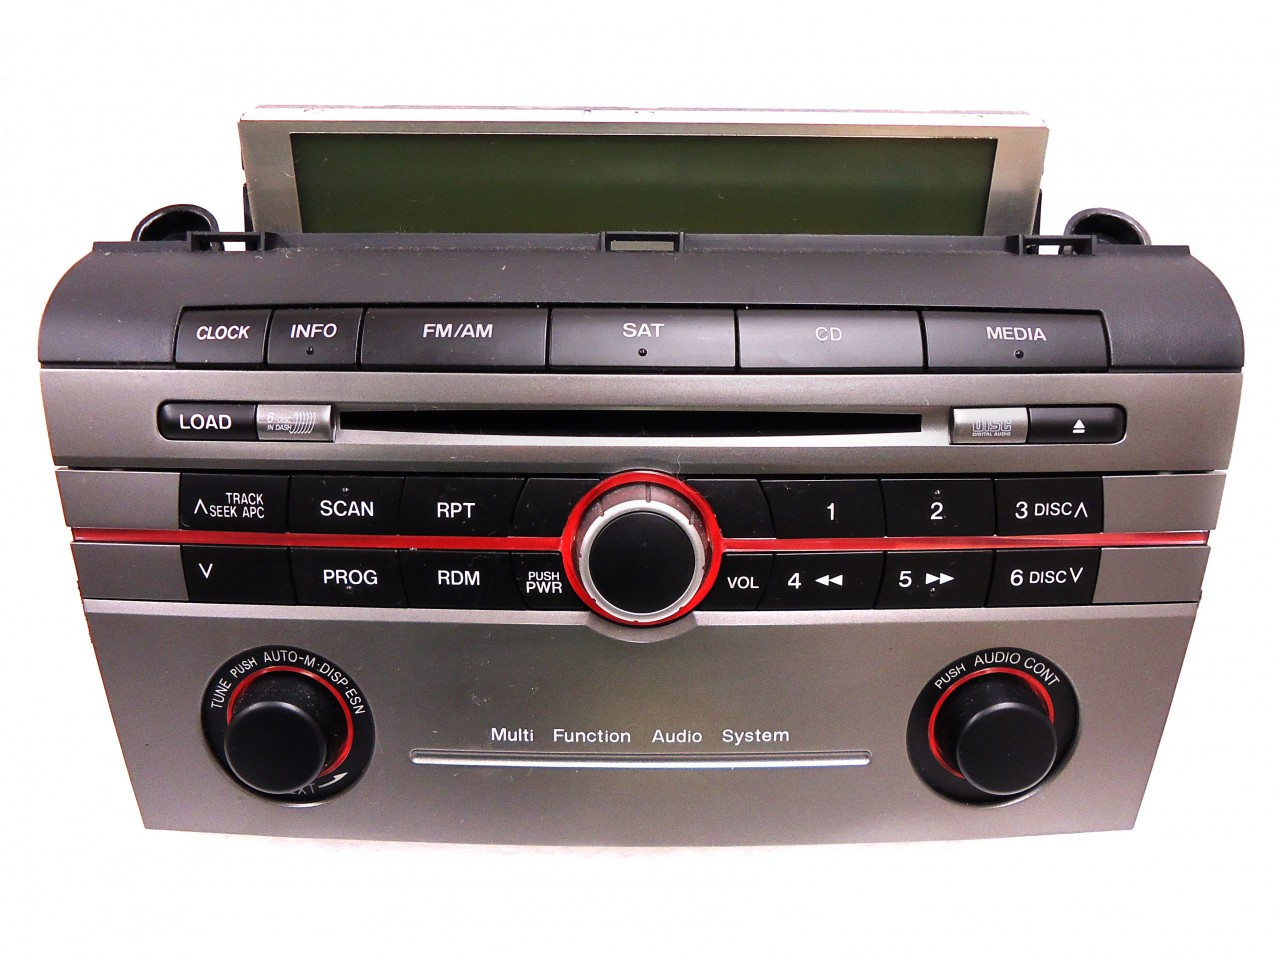 mazda 3 radio stereo 6 disc changer cd player sat multi function audio system br9k66arx bose  [ 1280 x 960 Pixel ]